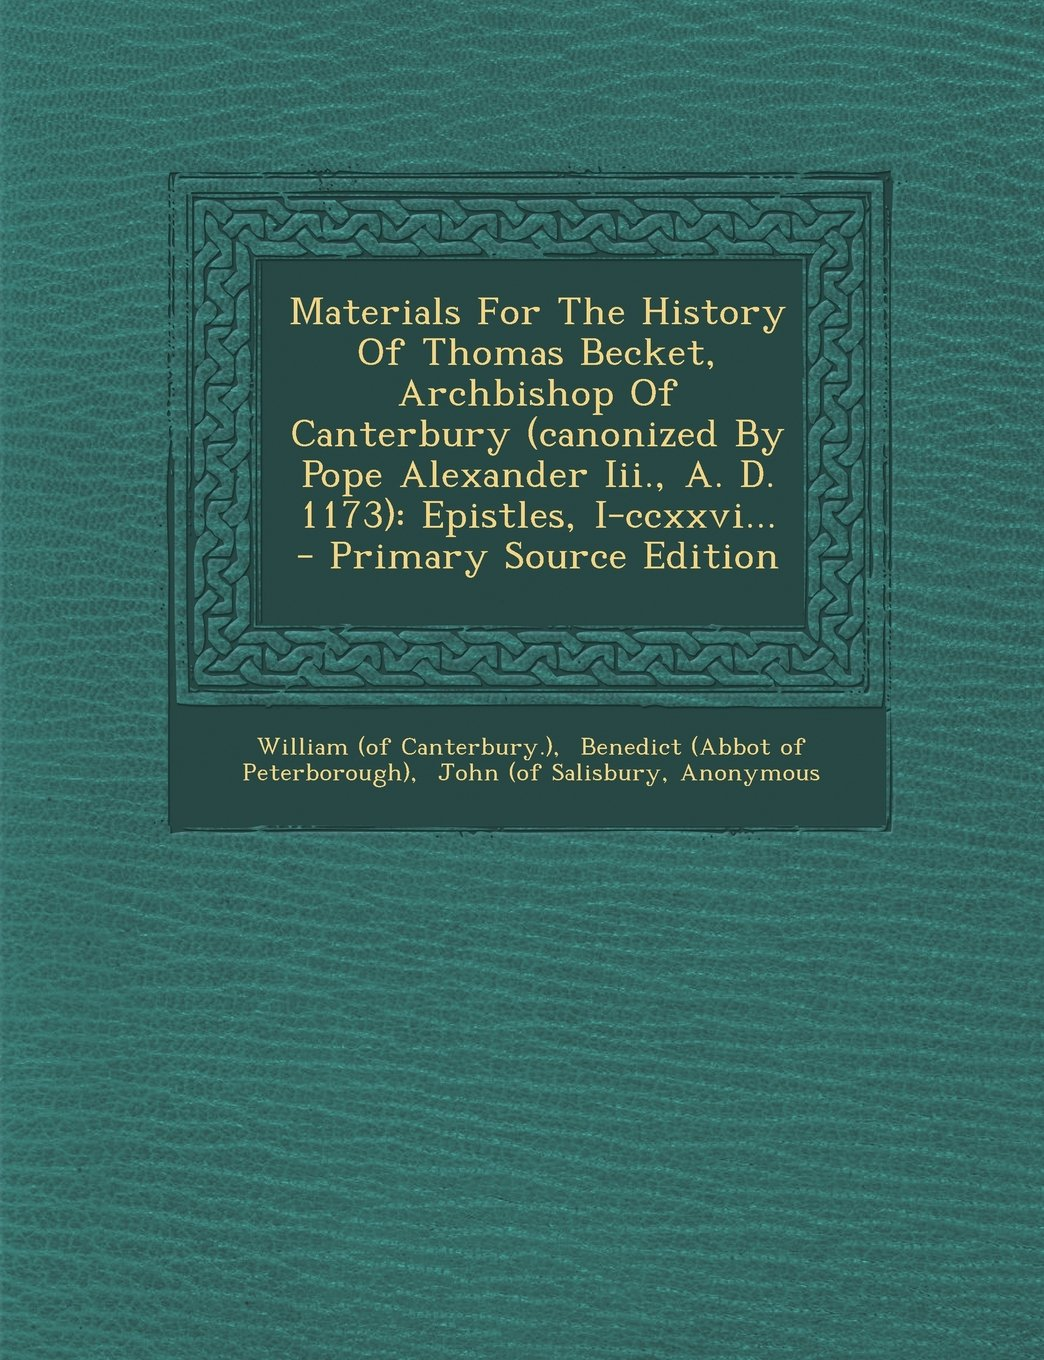 Download Materials For The History Of Thomas Becket, Archbishop Of Canterbury (canonized By Pope Alexander Iii., A. D. 1173): Epistles, I-ccxxvi... - Primary Source Edition (Latin Edition) pdf